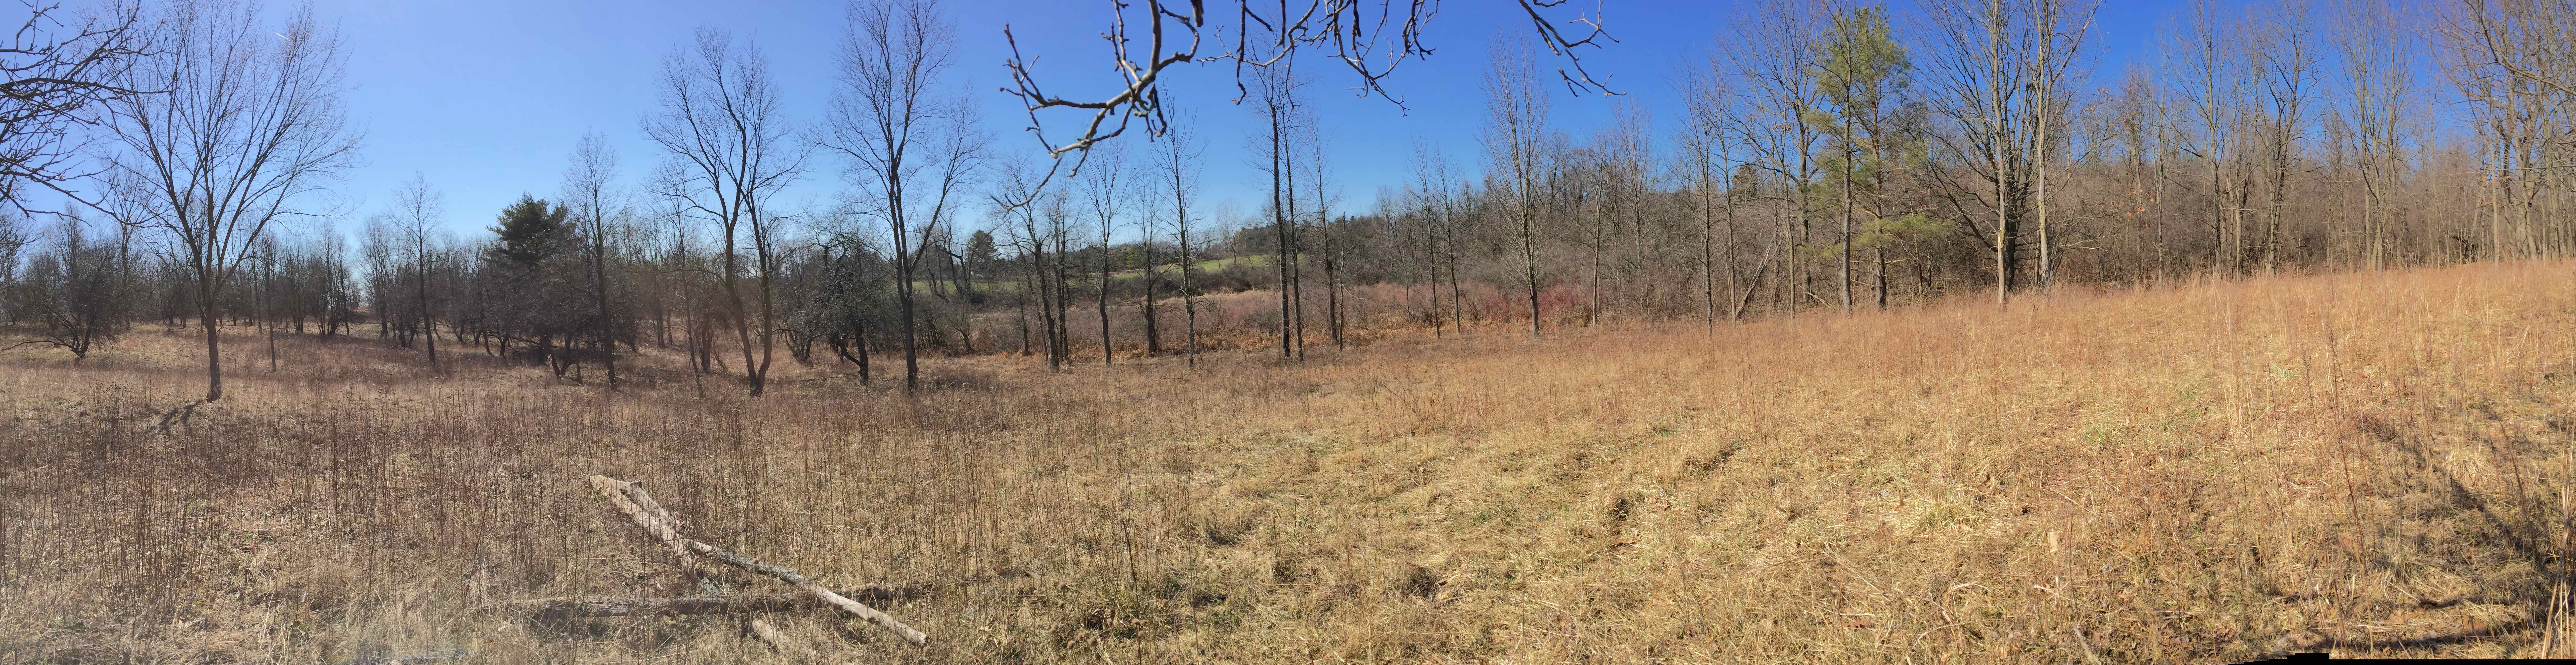 Pano Meadow at WR (3)